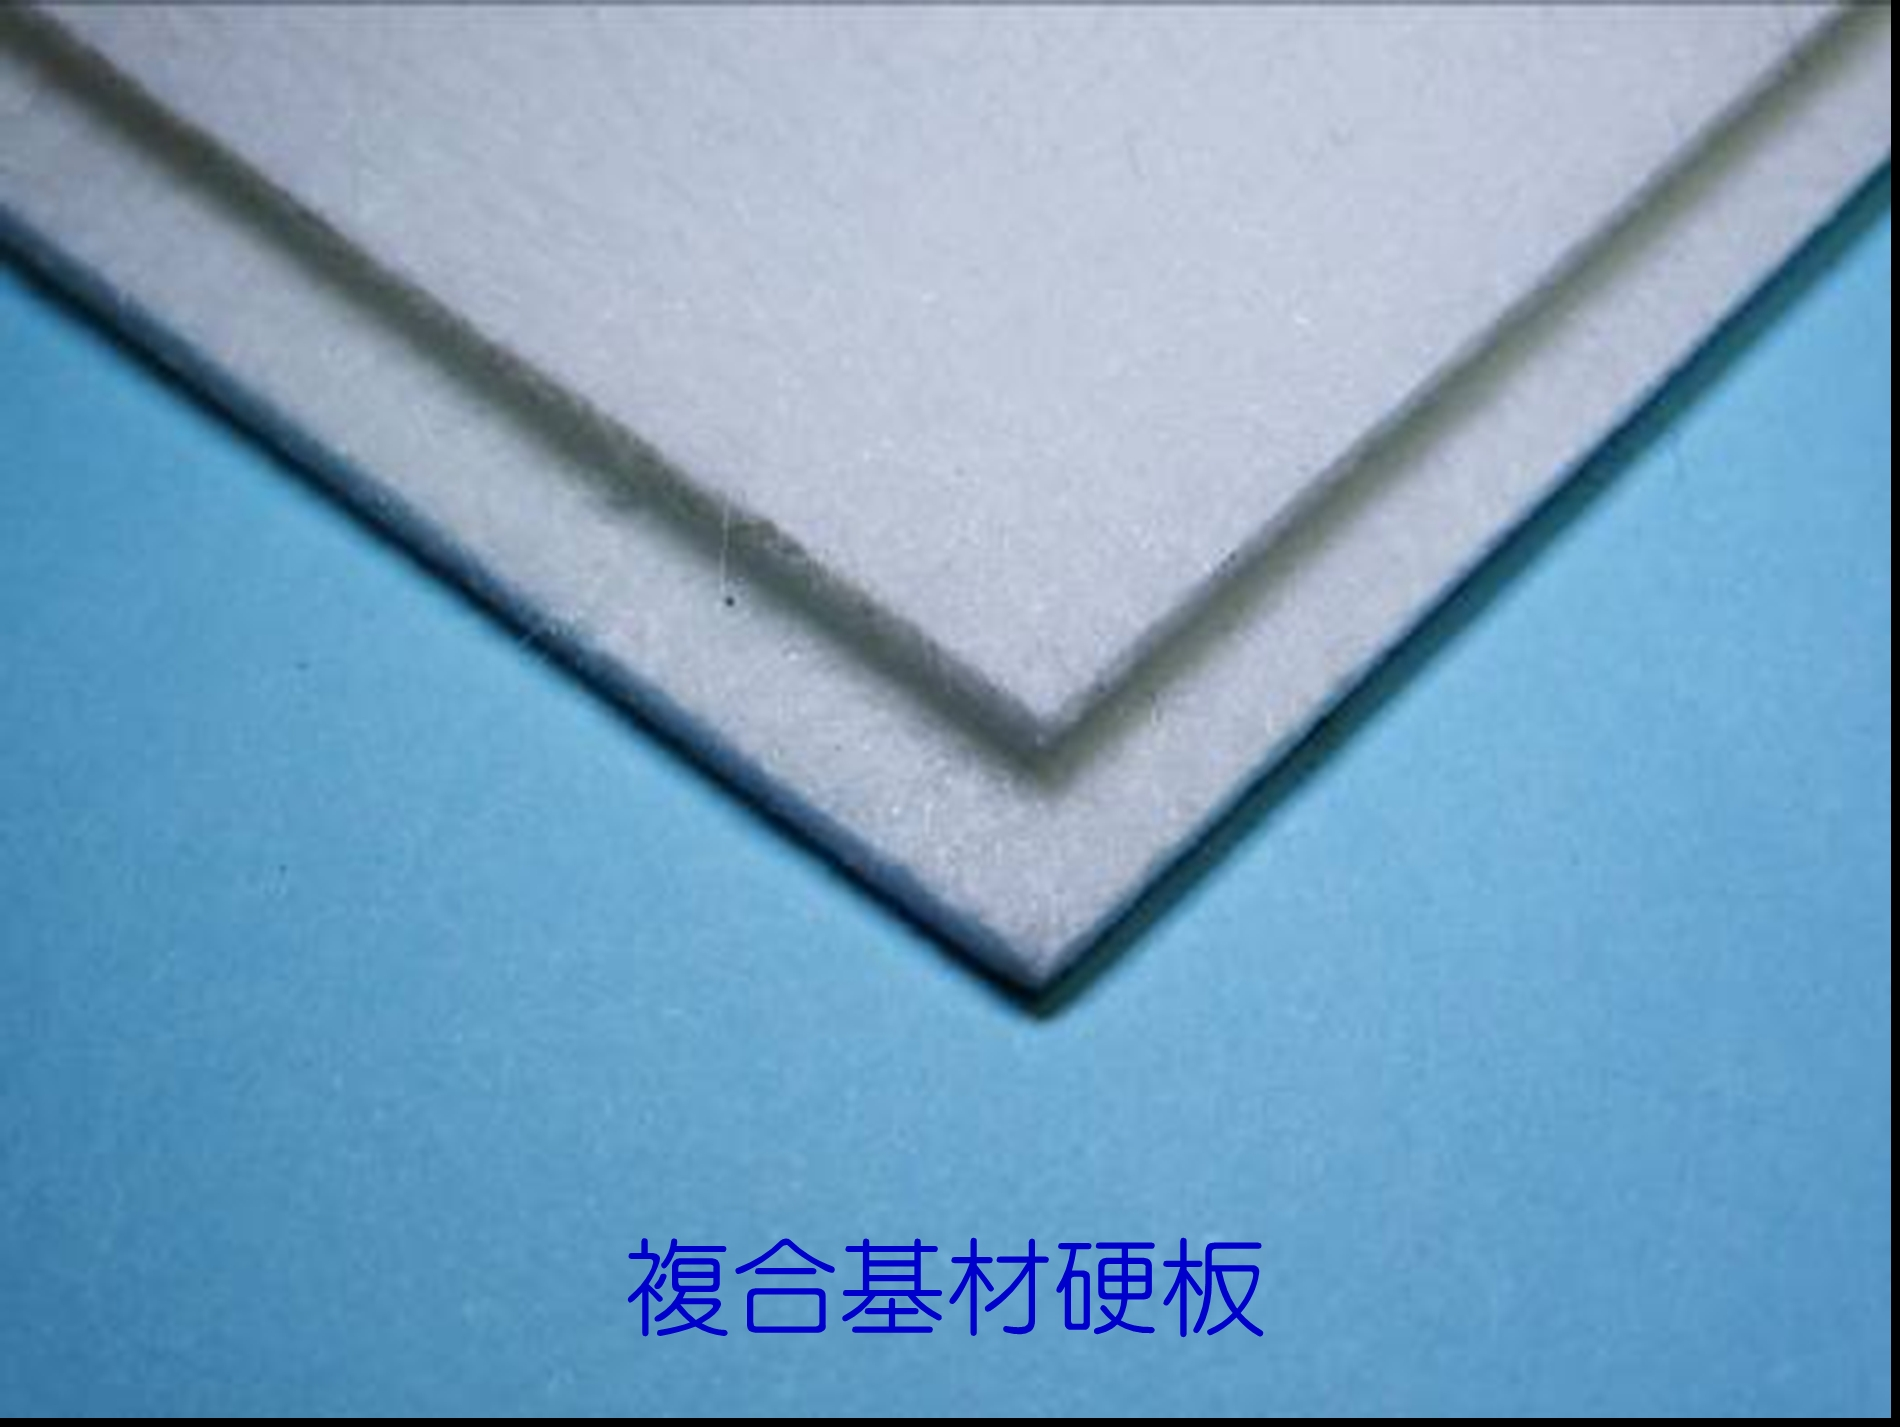 Industrial High performance needled mat / felt Manufacturing - LFJ